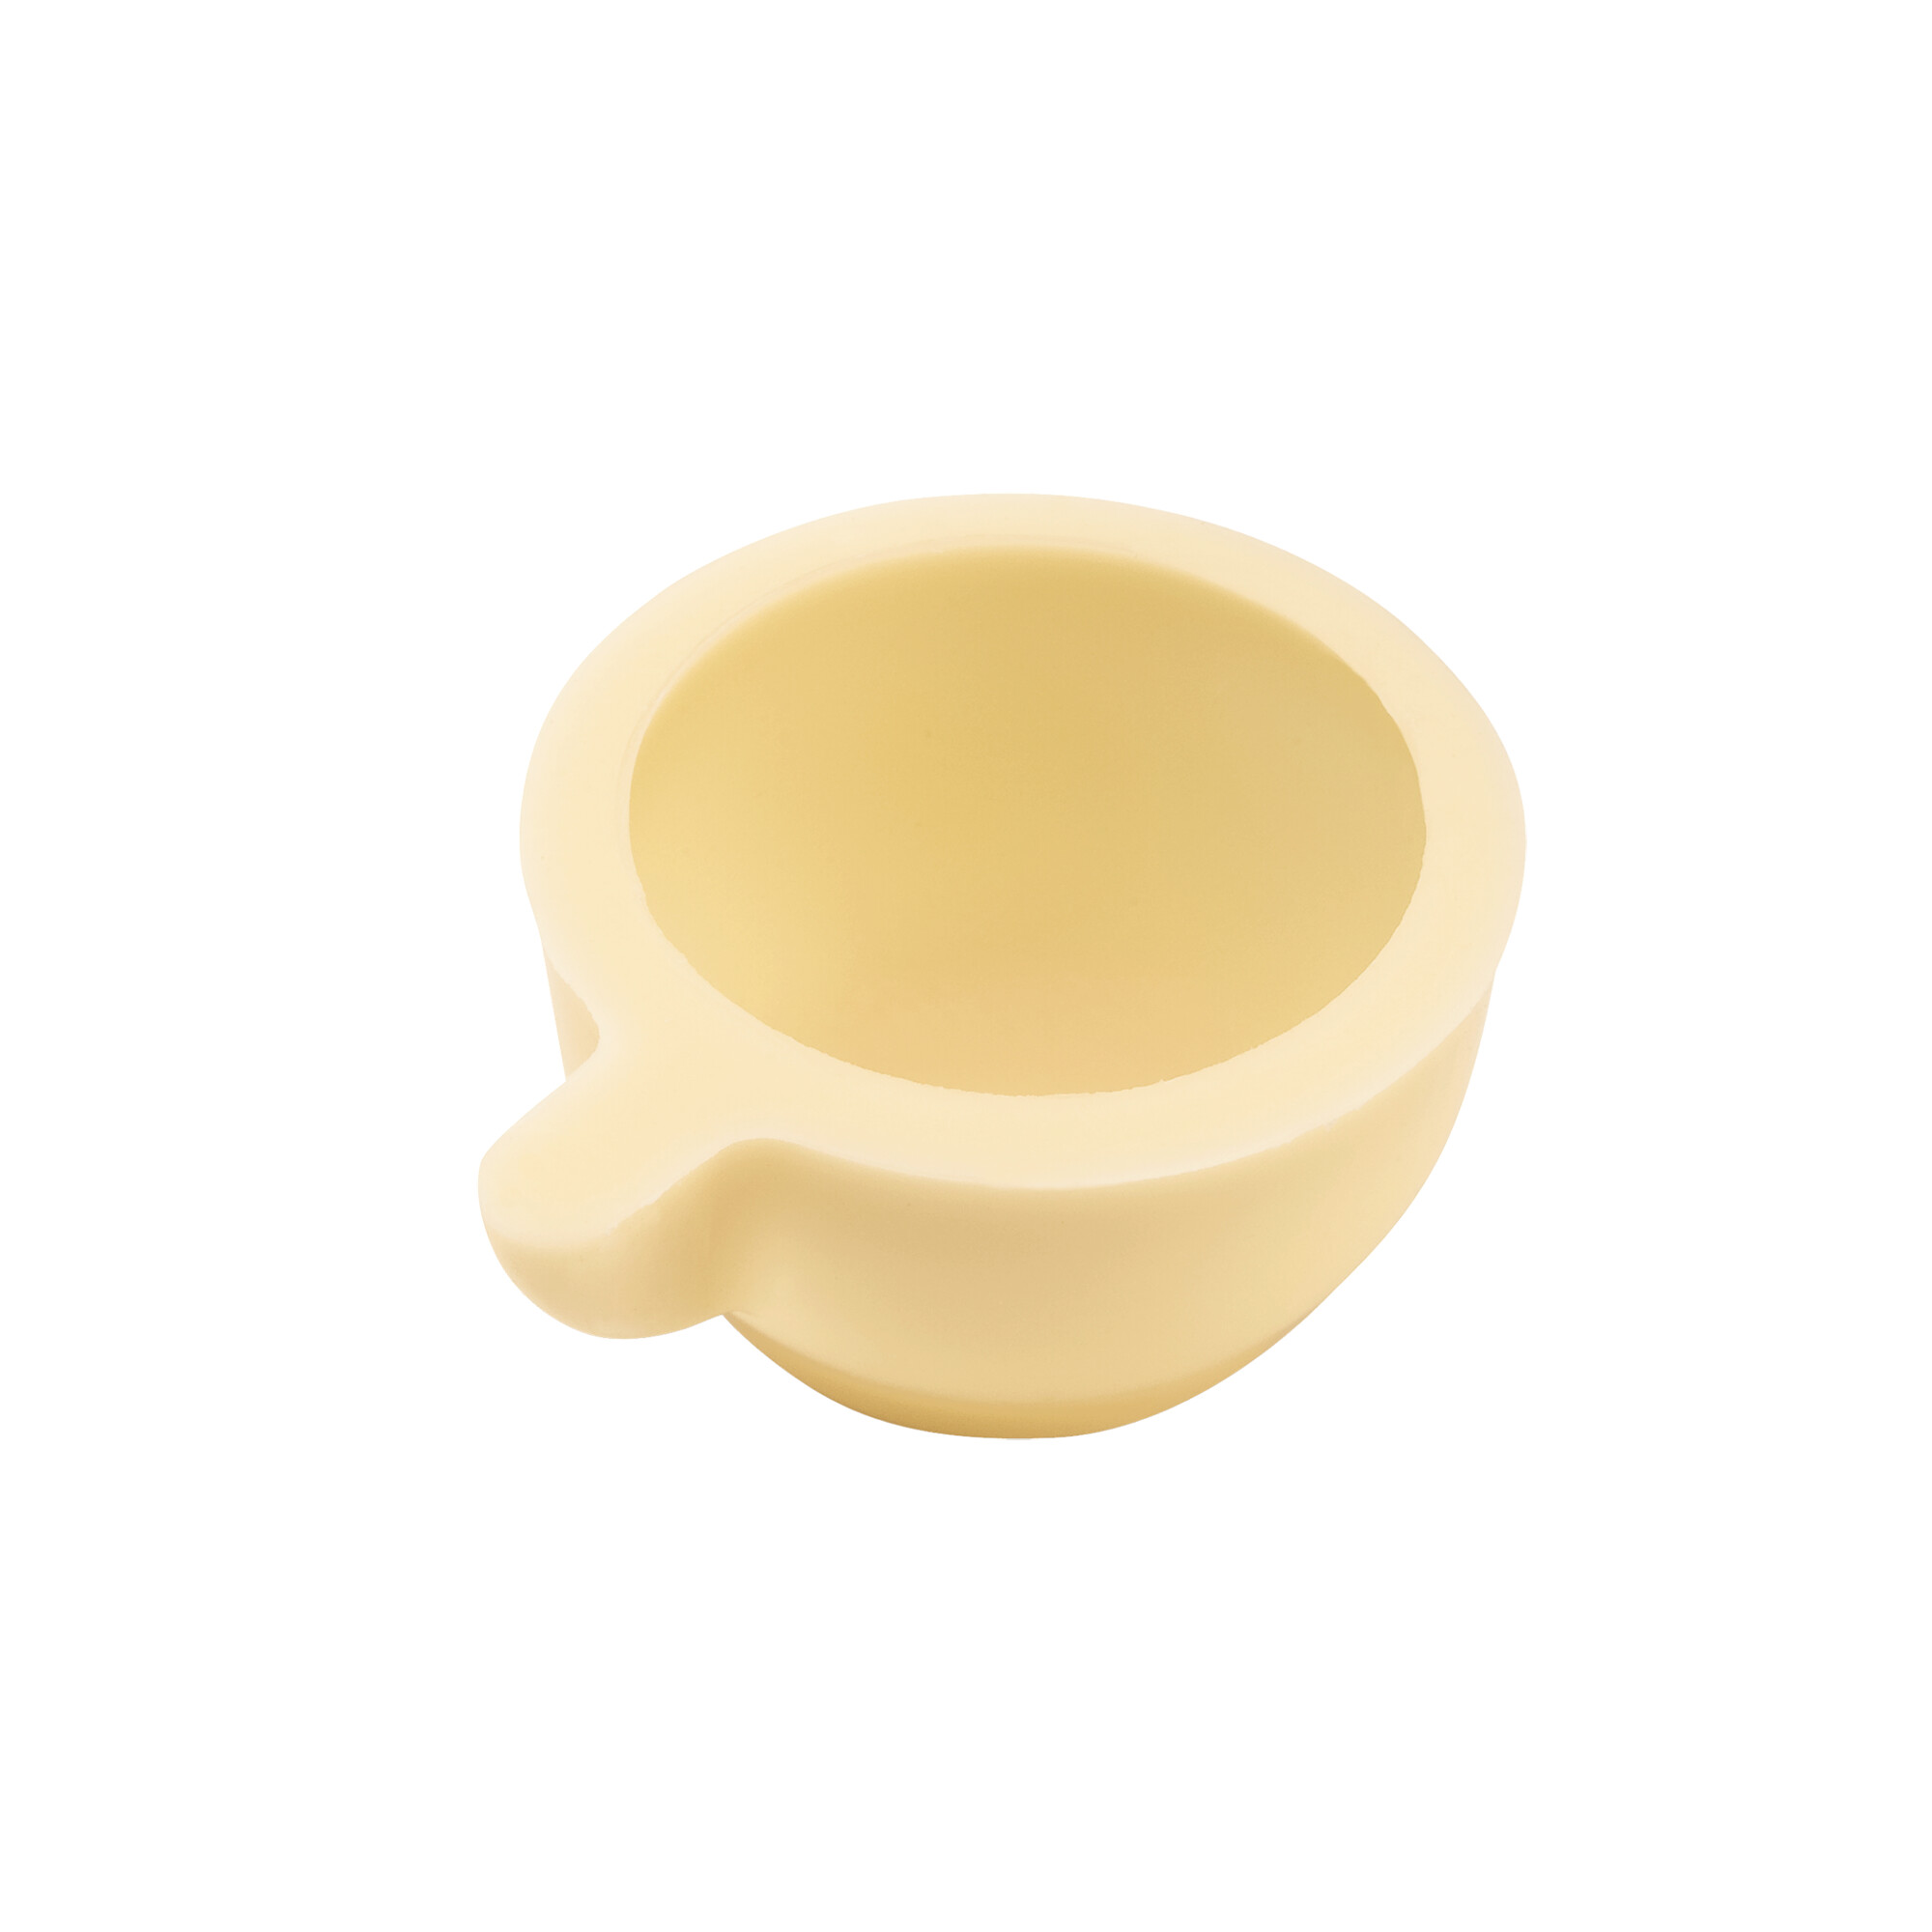 Chocolate hollow bodies - Cup - White chocolate - 54 pieces